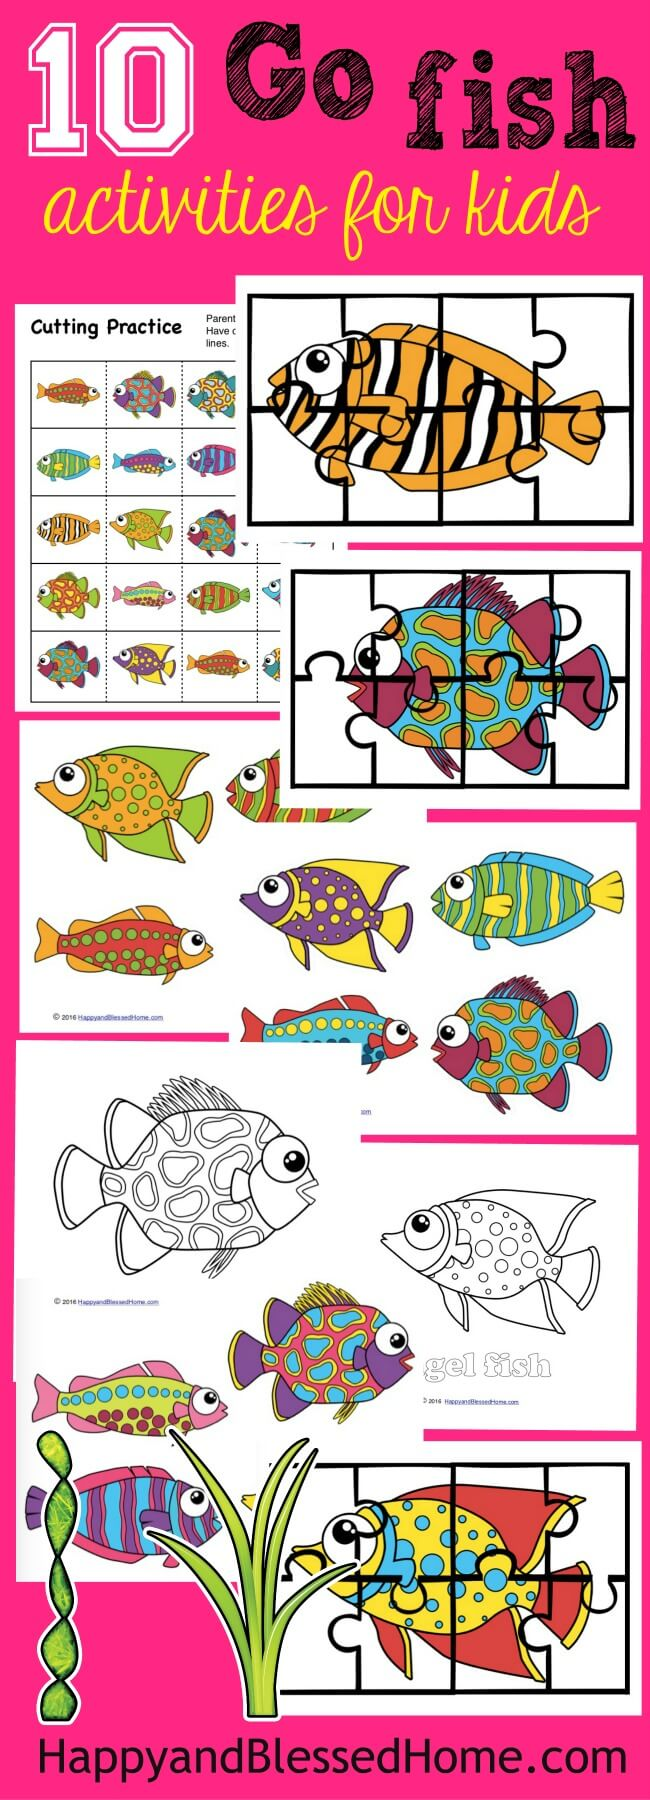 Colorful fun activity pack for kids with 10 Go Fish activities including fish you can actually use for fishing